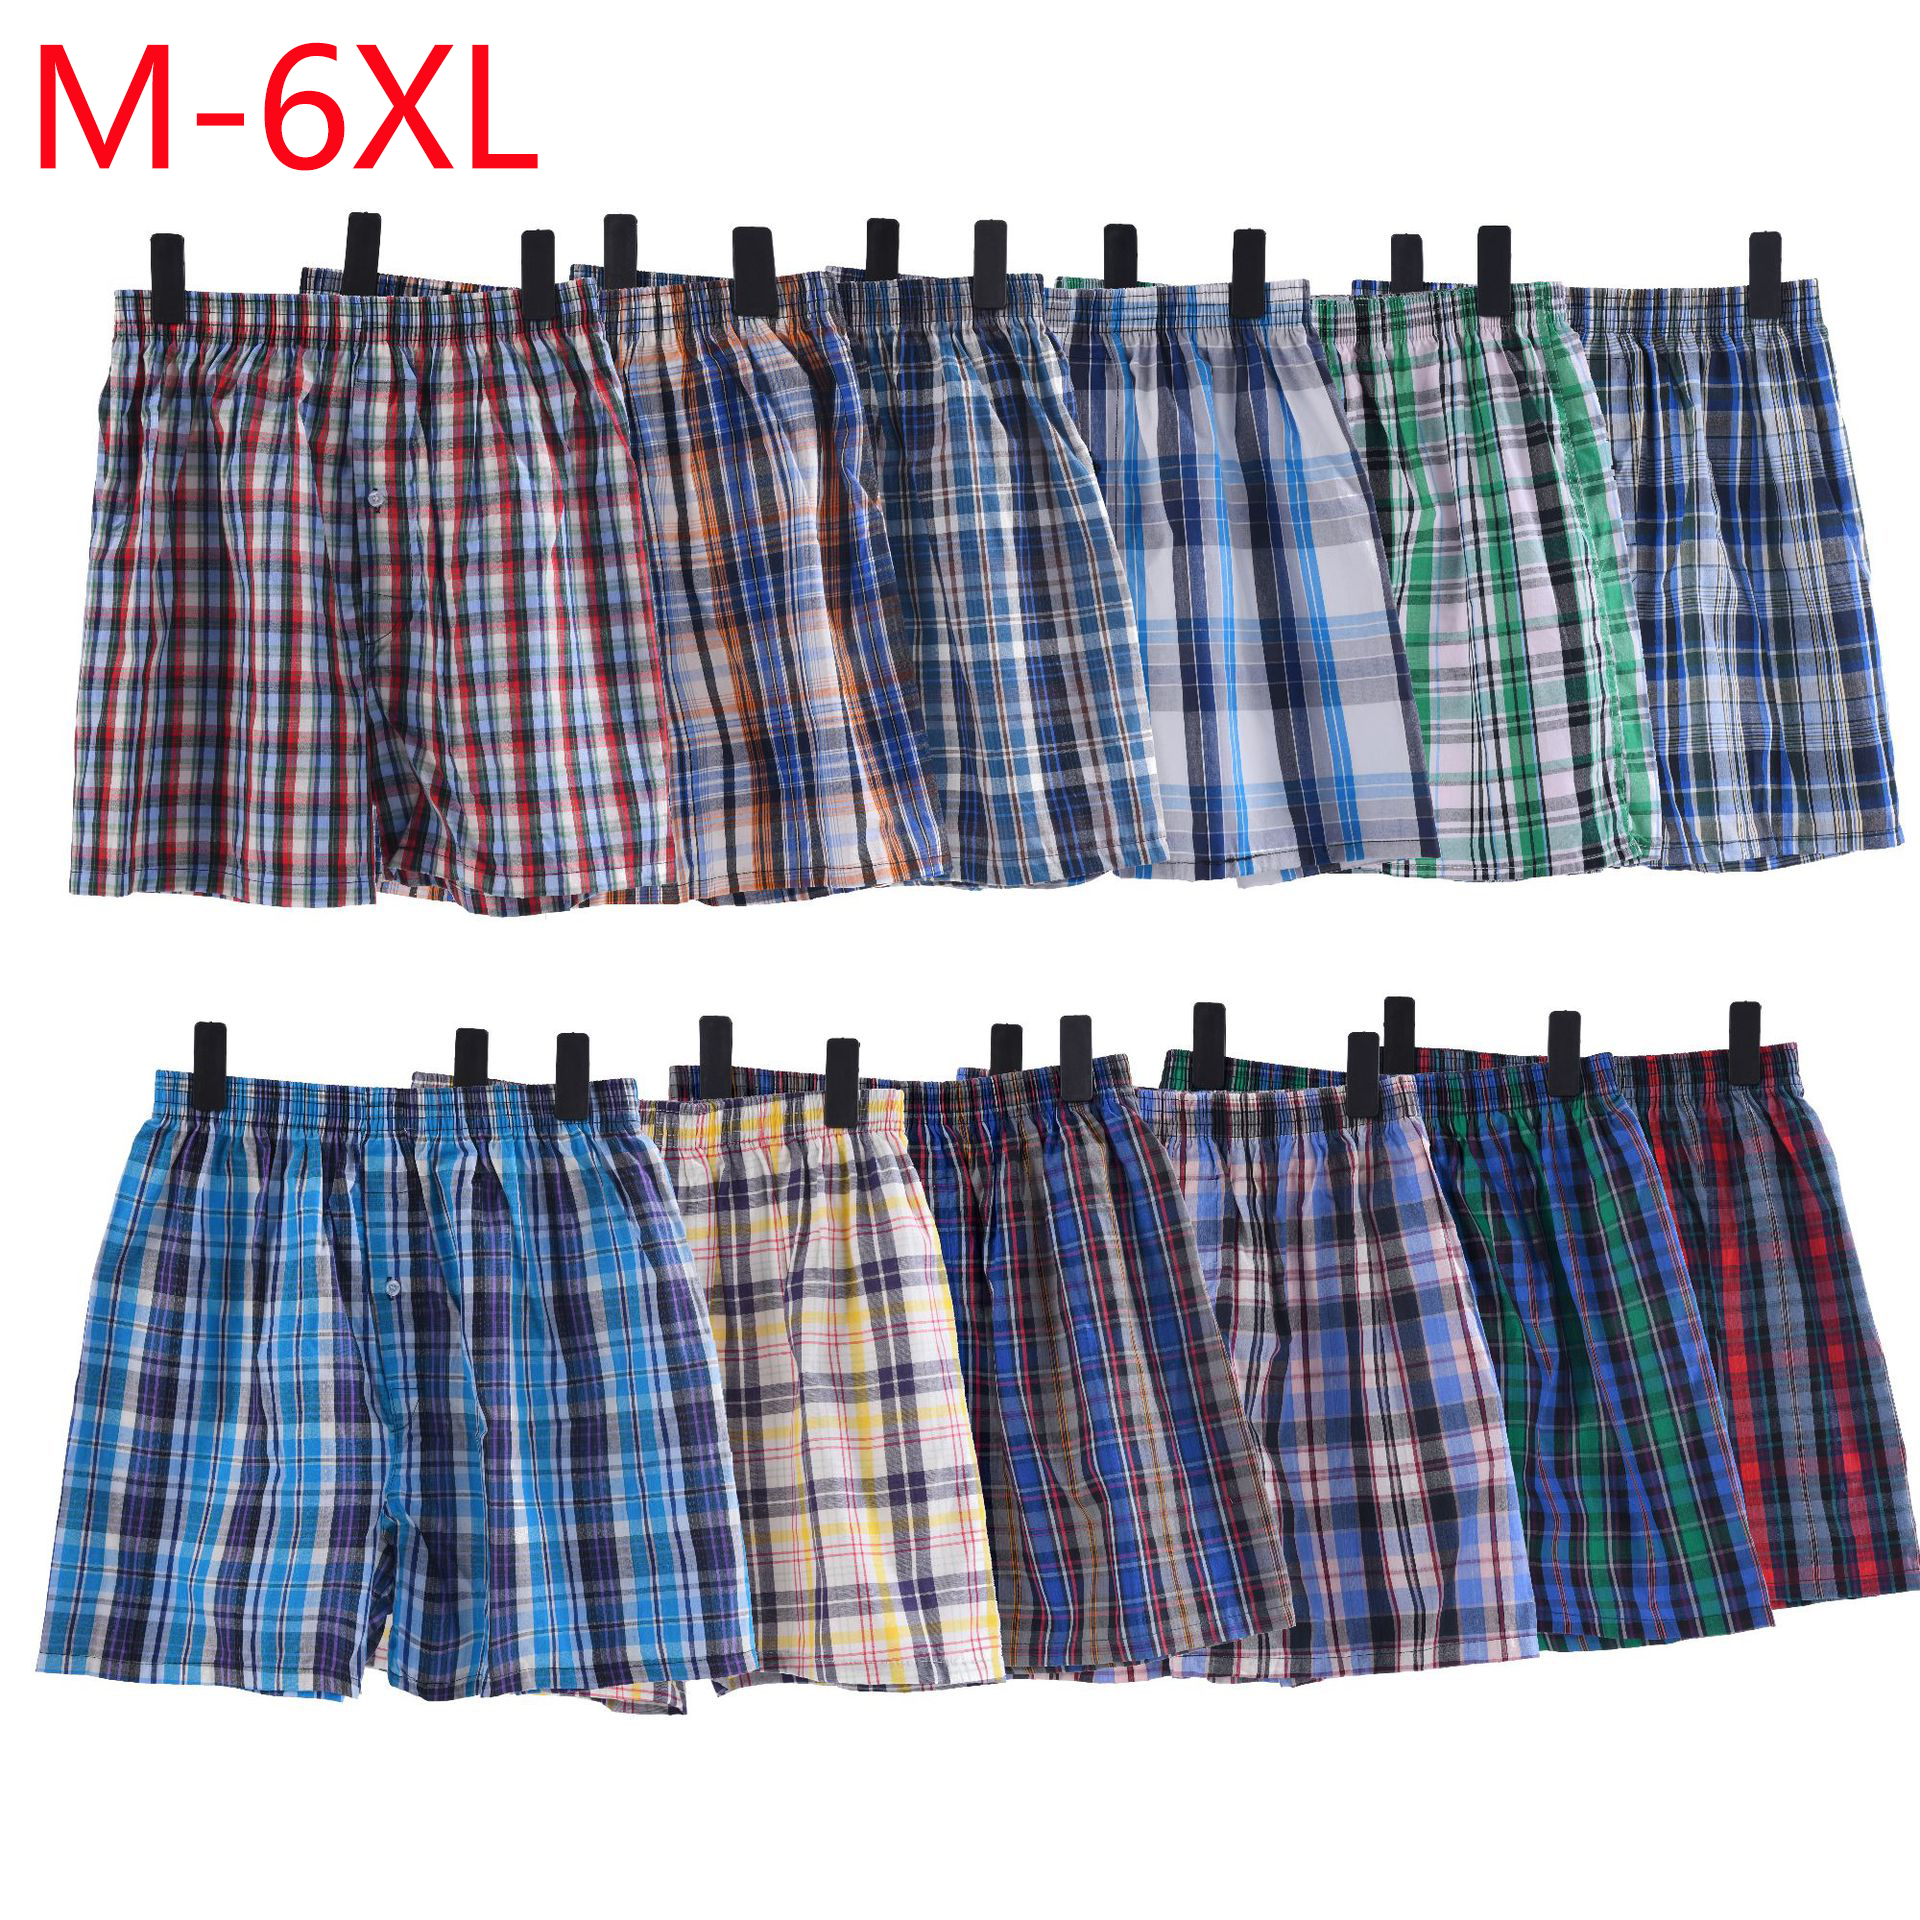 6PCS mens underwear boxers shorts casual cotton sleep underpants quality plaid loose comfortable homewear striped arrow panties